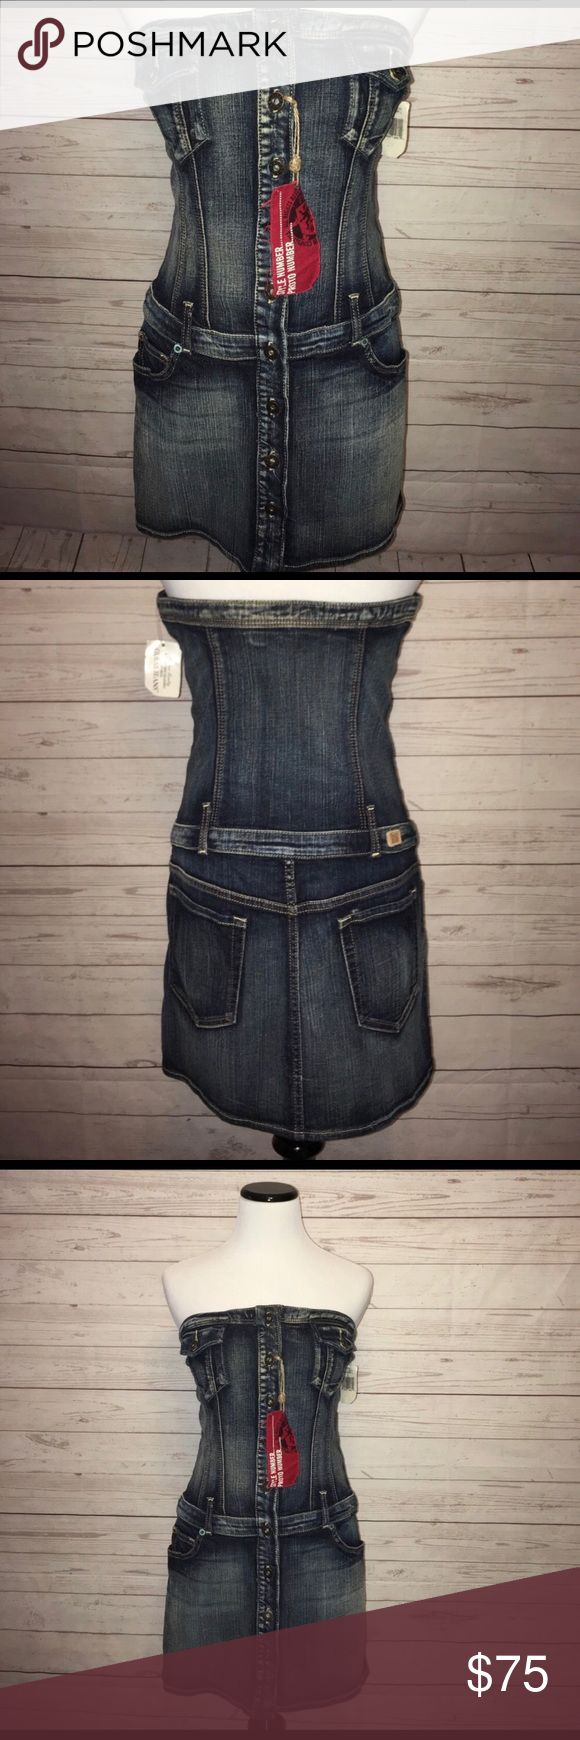 NWT GUESS jeans Vintage denim dress Excellent and gorgeous new with tags vintage guess jeans denim strapless dress. Bought this for myself but it's too small! Tags say size large so I'm going to say it's a juniors size large or a ladies small to medium. Guess Dresses Strapless